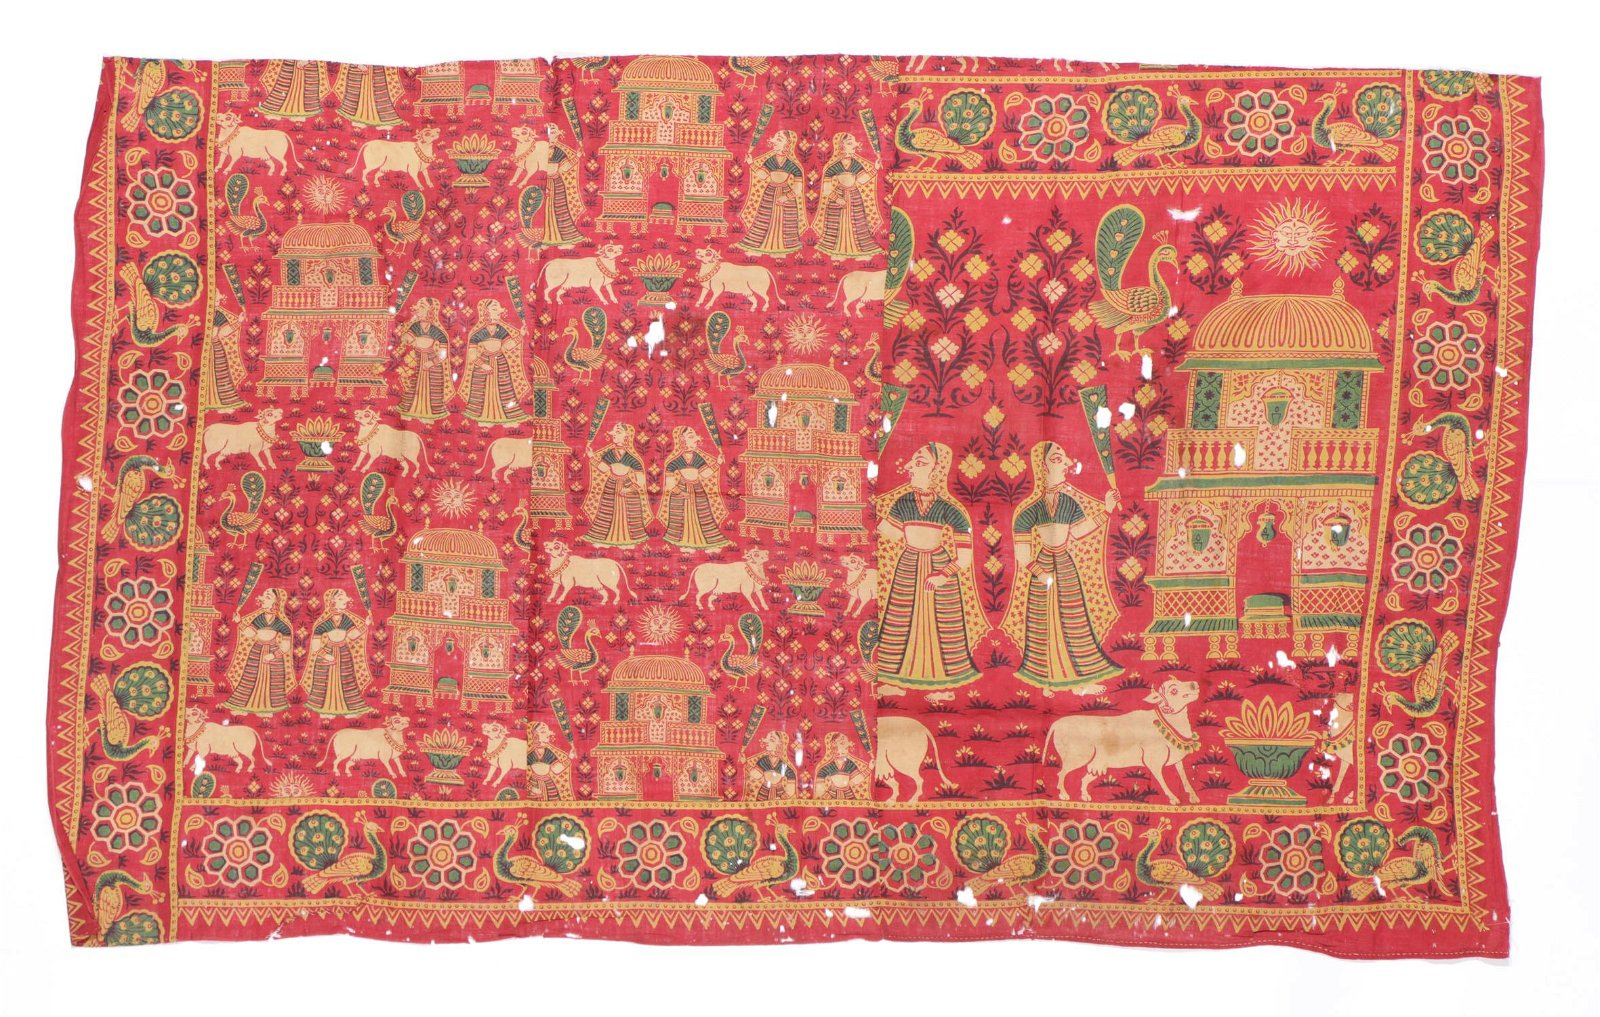 Pictorial Folk Art Hanging, India, Late 19th/Early 20th